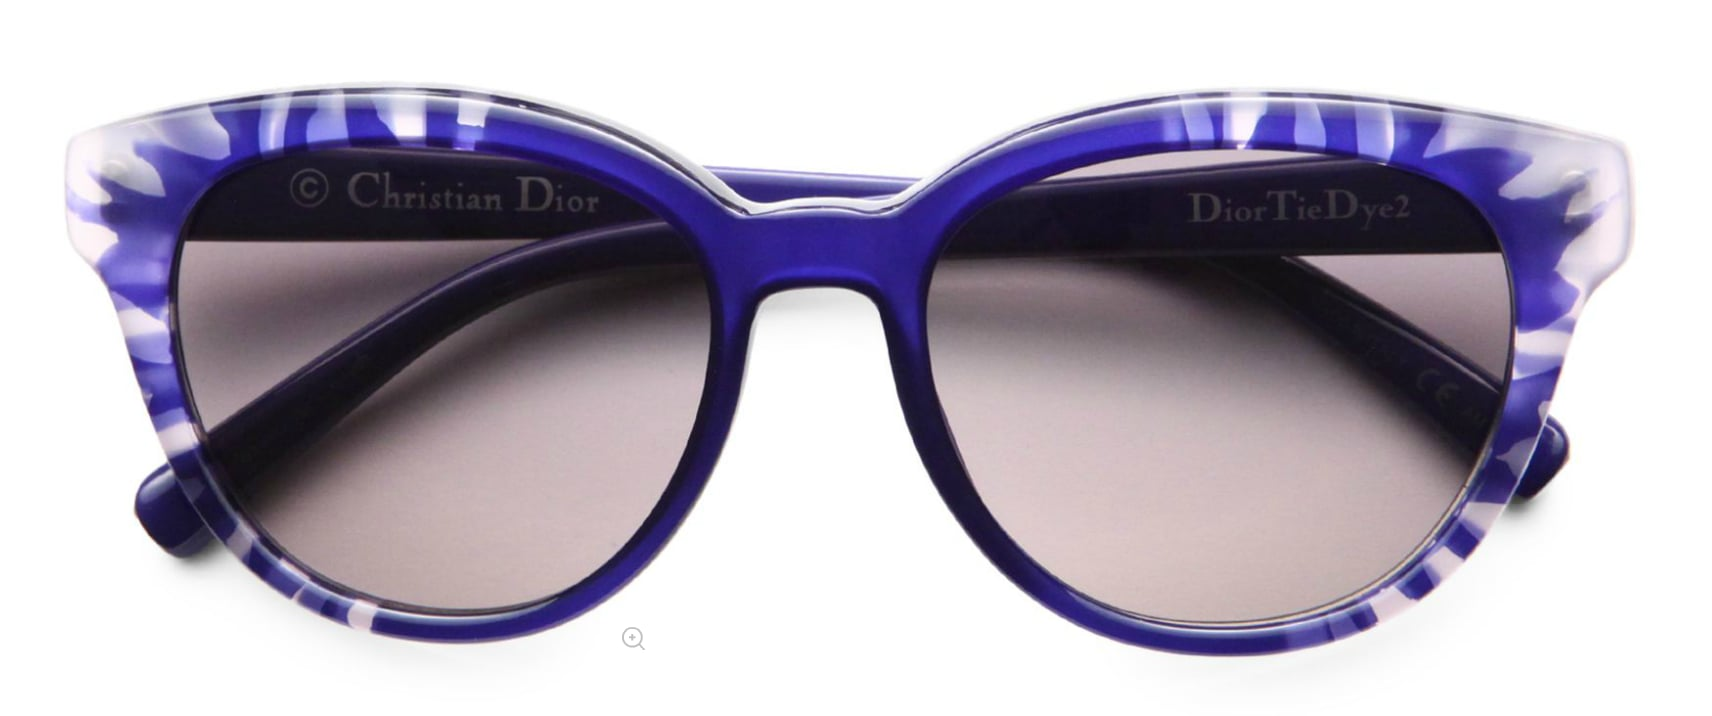 Finish off all of your warm-weather looks with these statement Dior Floral Sunglasses ($222, originally $295).